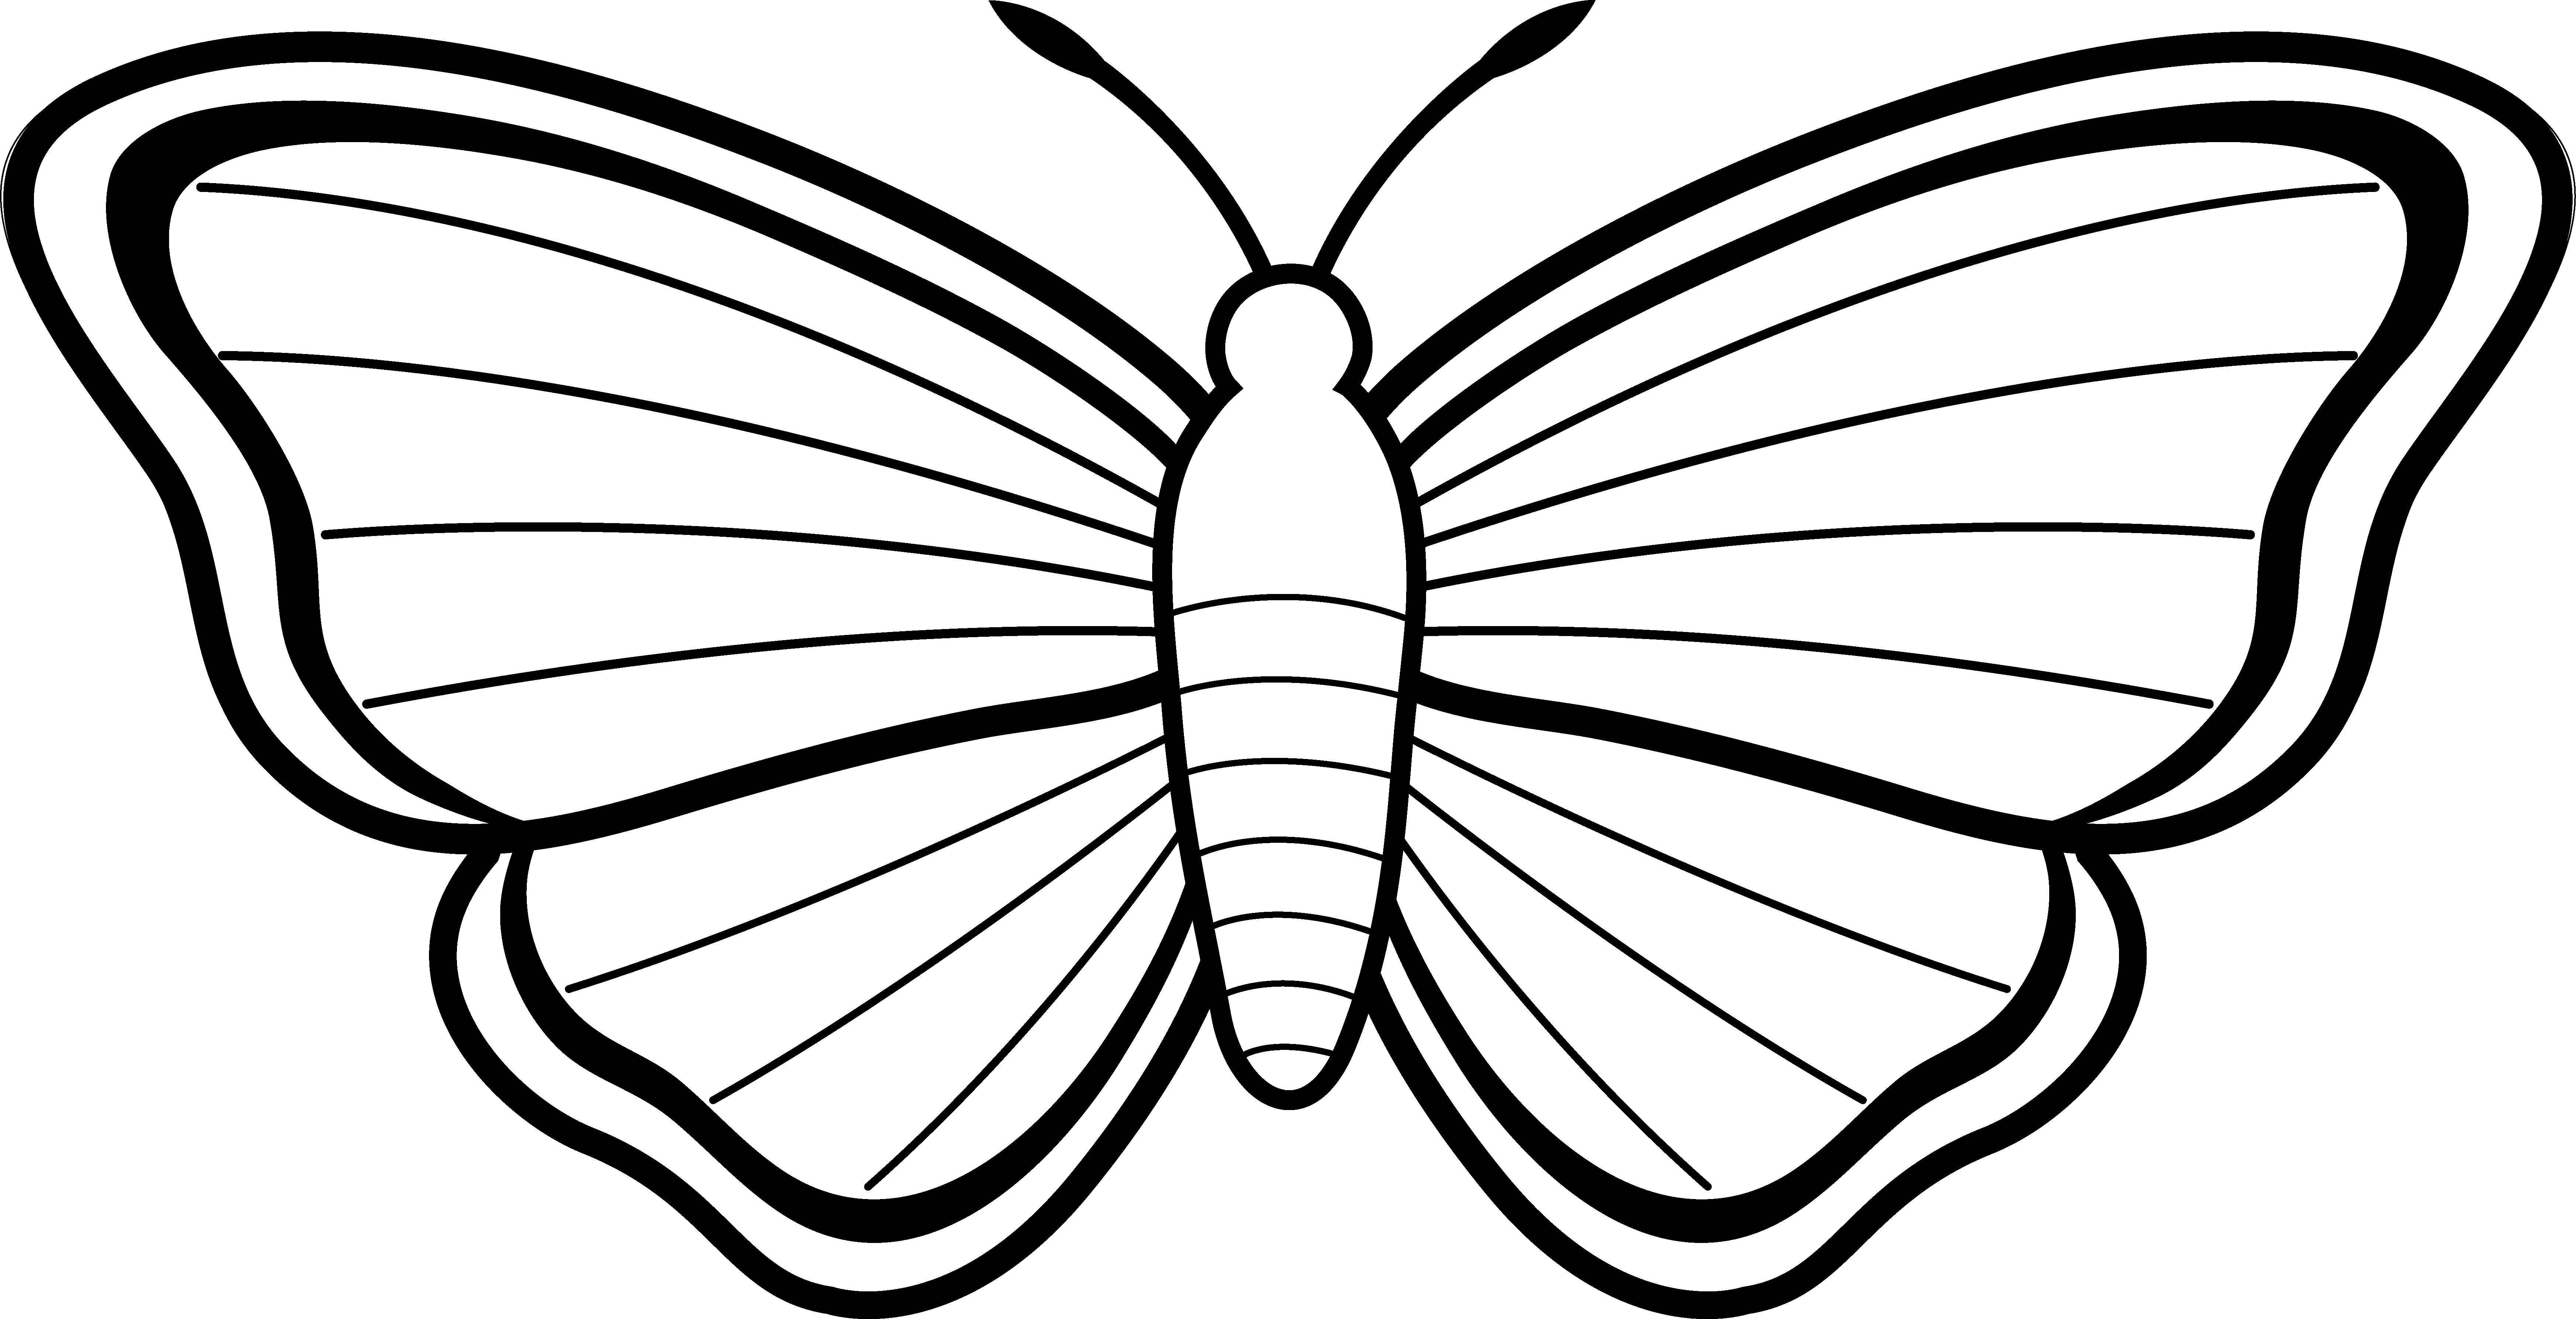 Butterfly Flying Outline Clipart-butterfly flying outline clipart-6